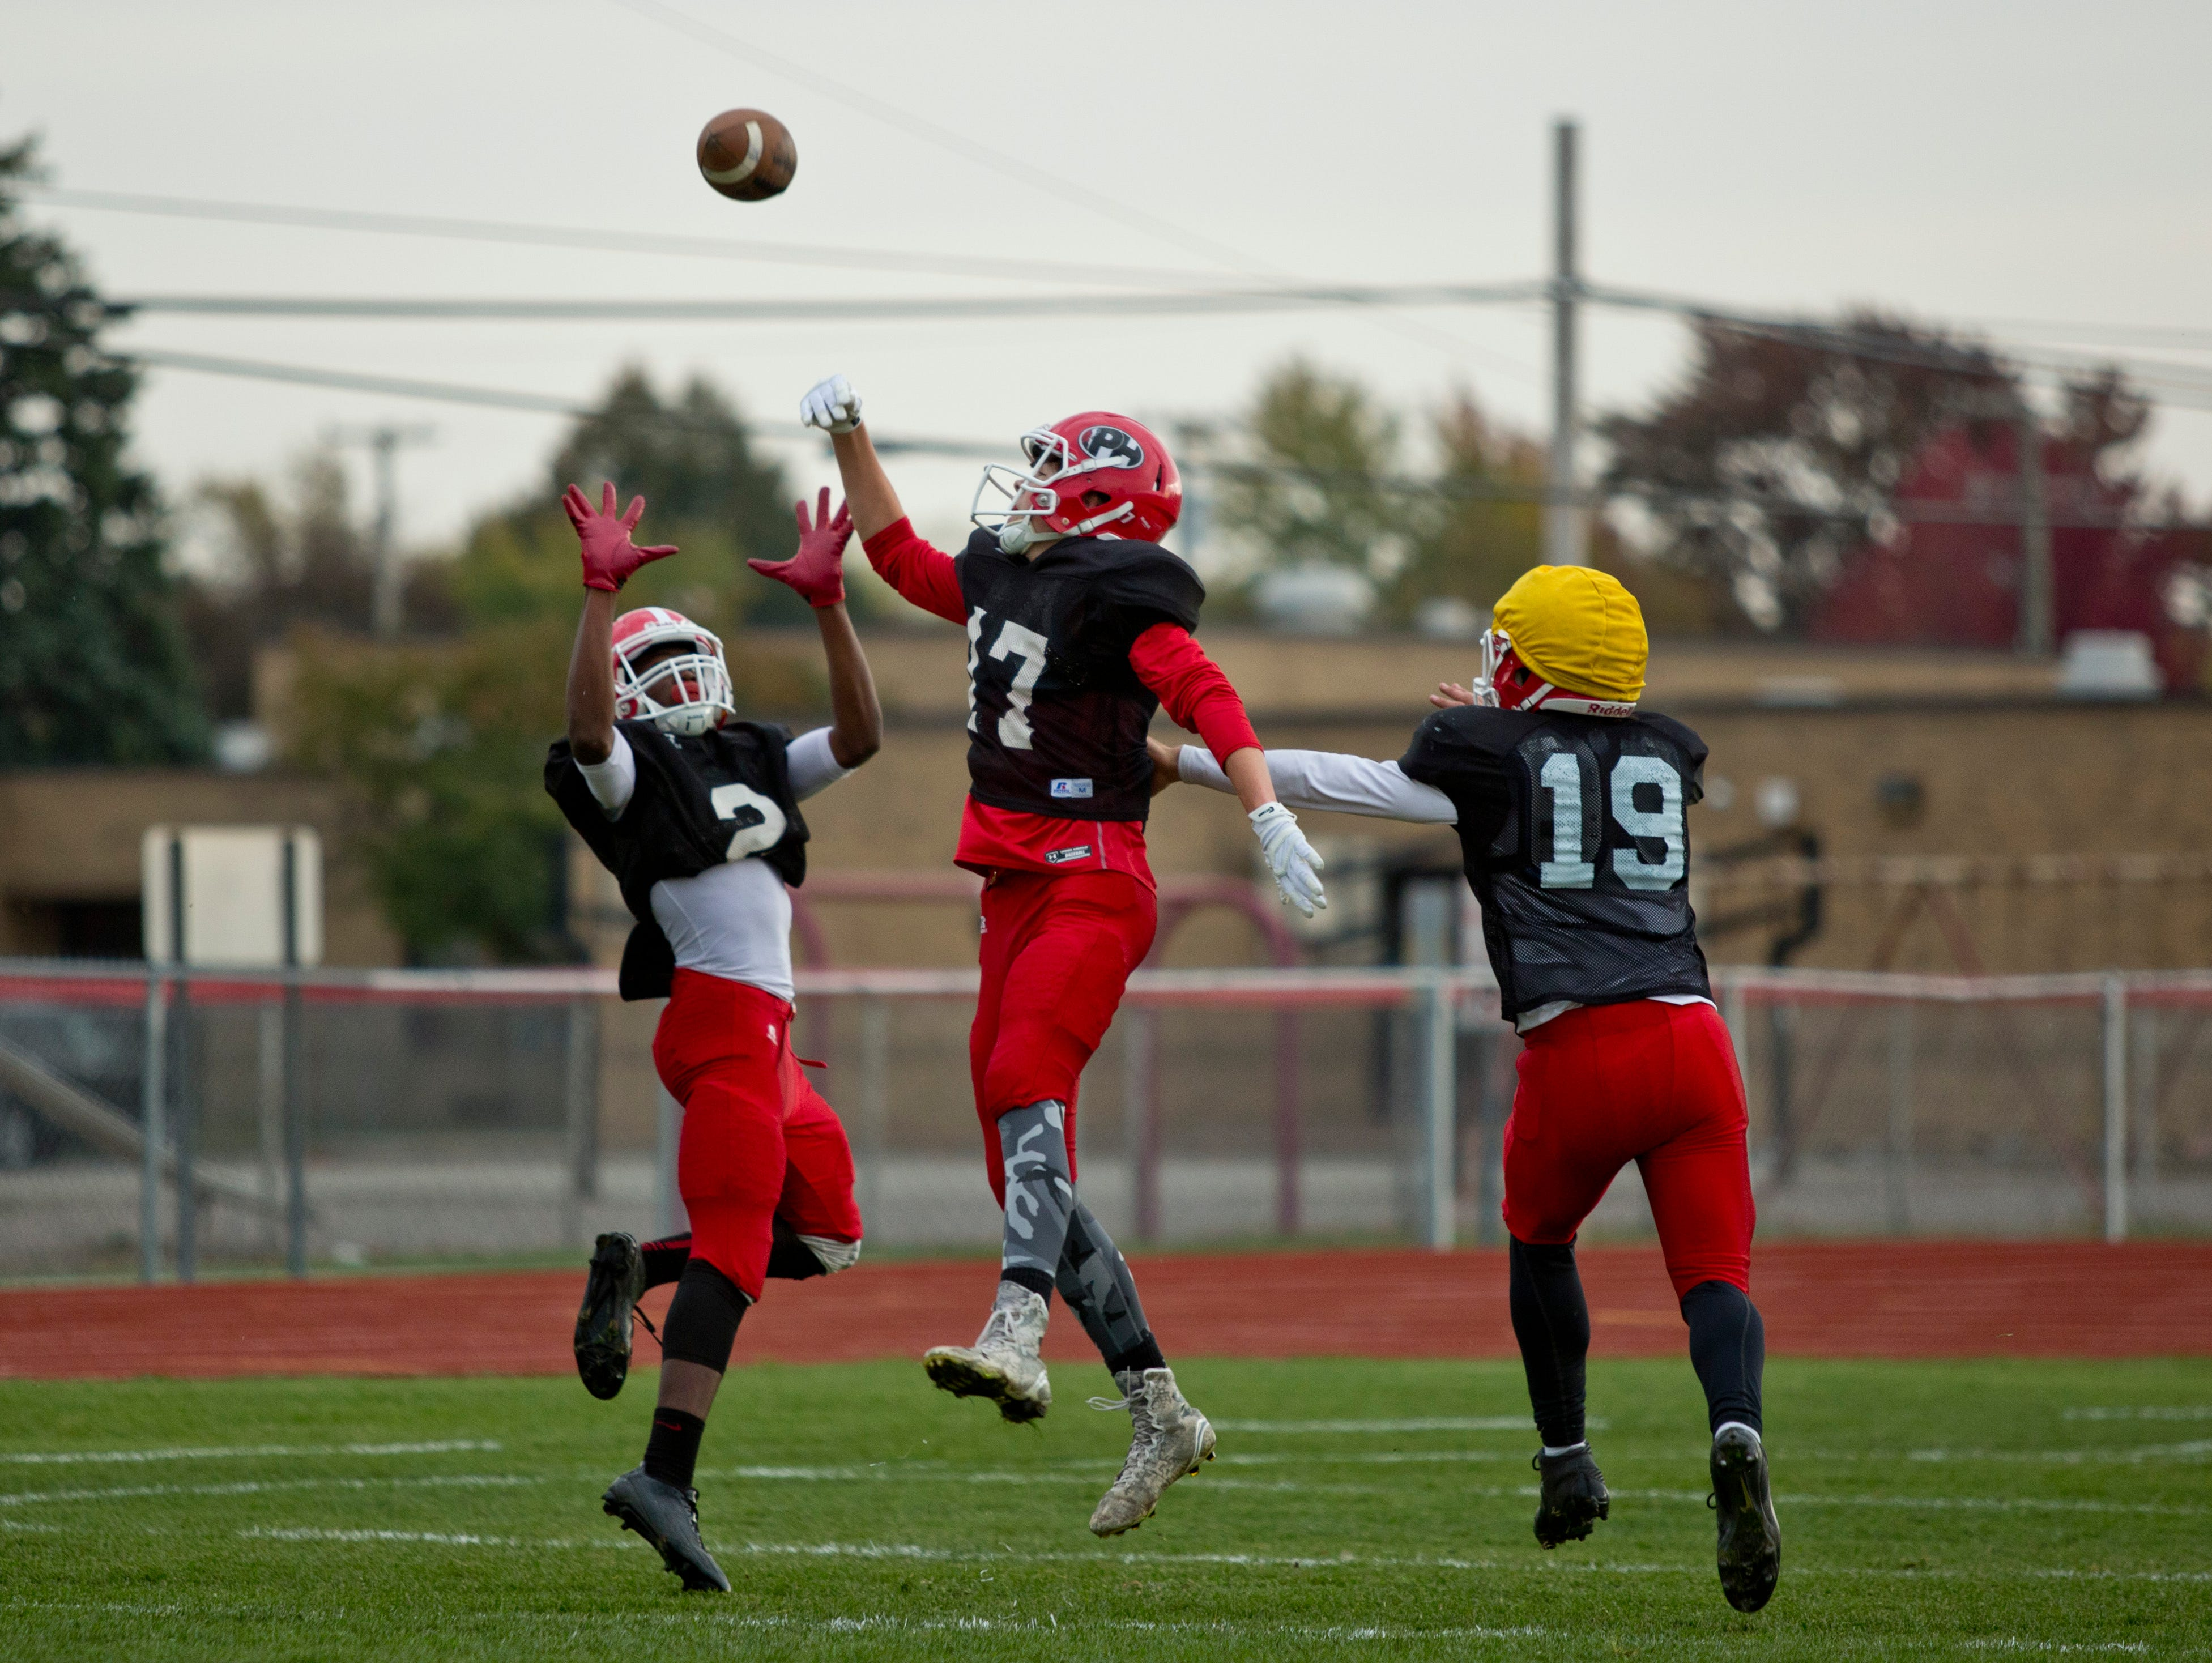 Port Huron's Javante Nichols leaps to catch a pass over Luke Winkler during practice Tuesday, October 20, 2015 at Port Huron High School.